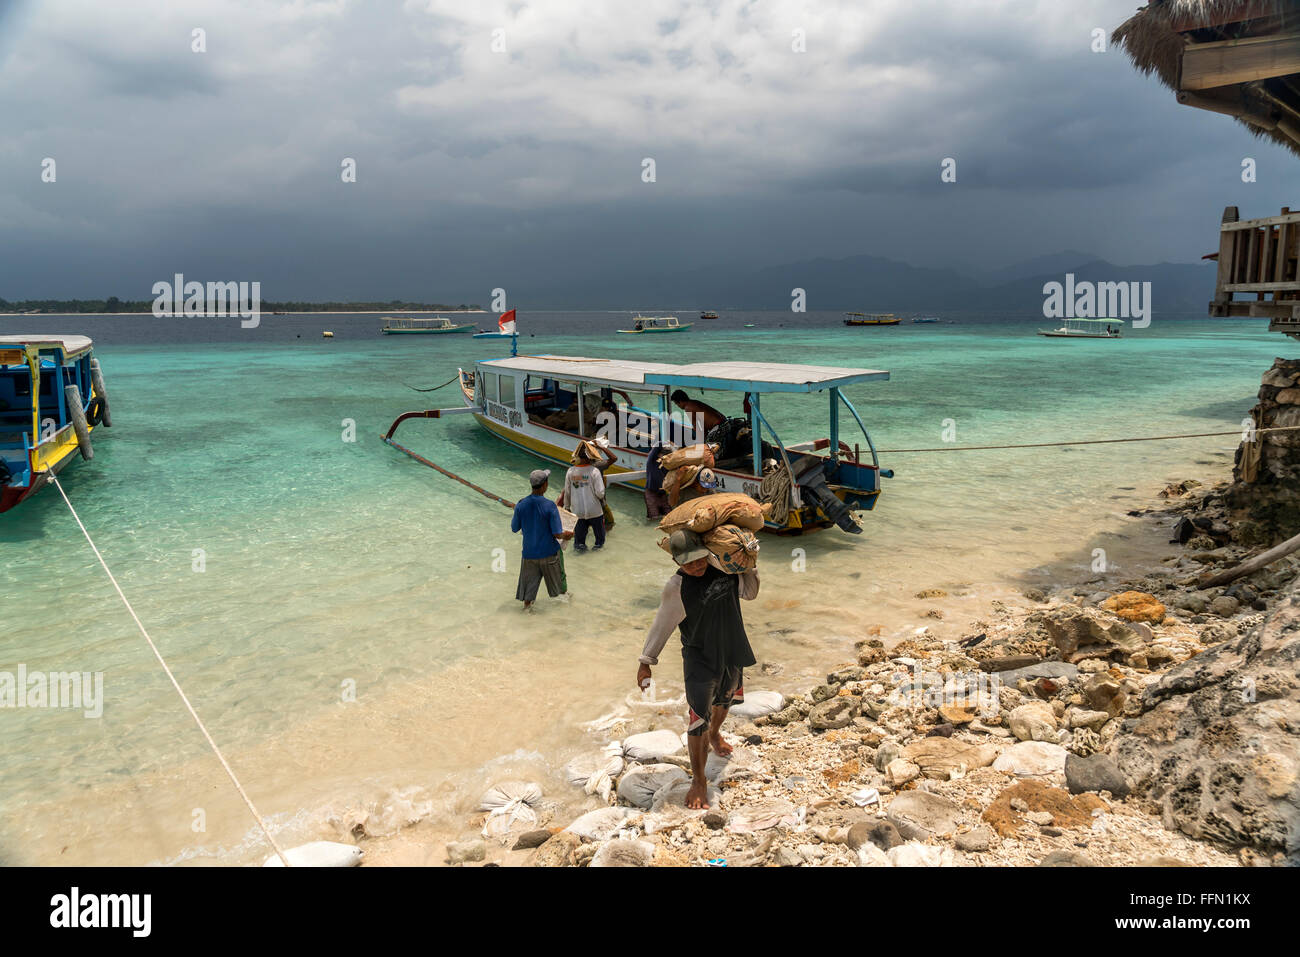 worker carrying construction materials to the small island Gili Meno, Lombok, Indonesia, Asia Stock Photo